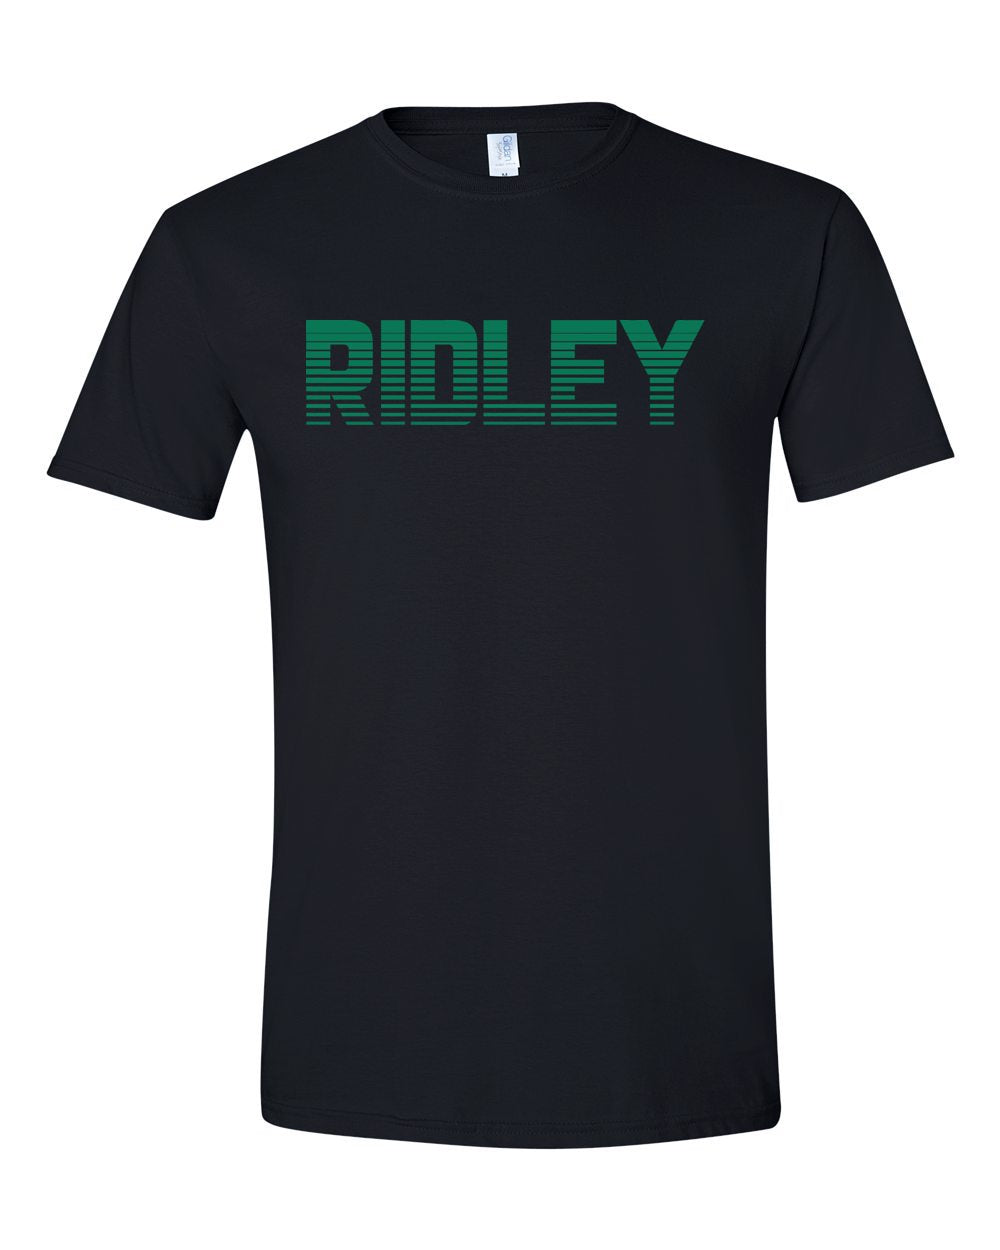 Youth Green & Black Ridley T-Shirt